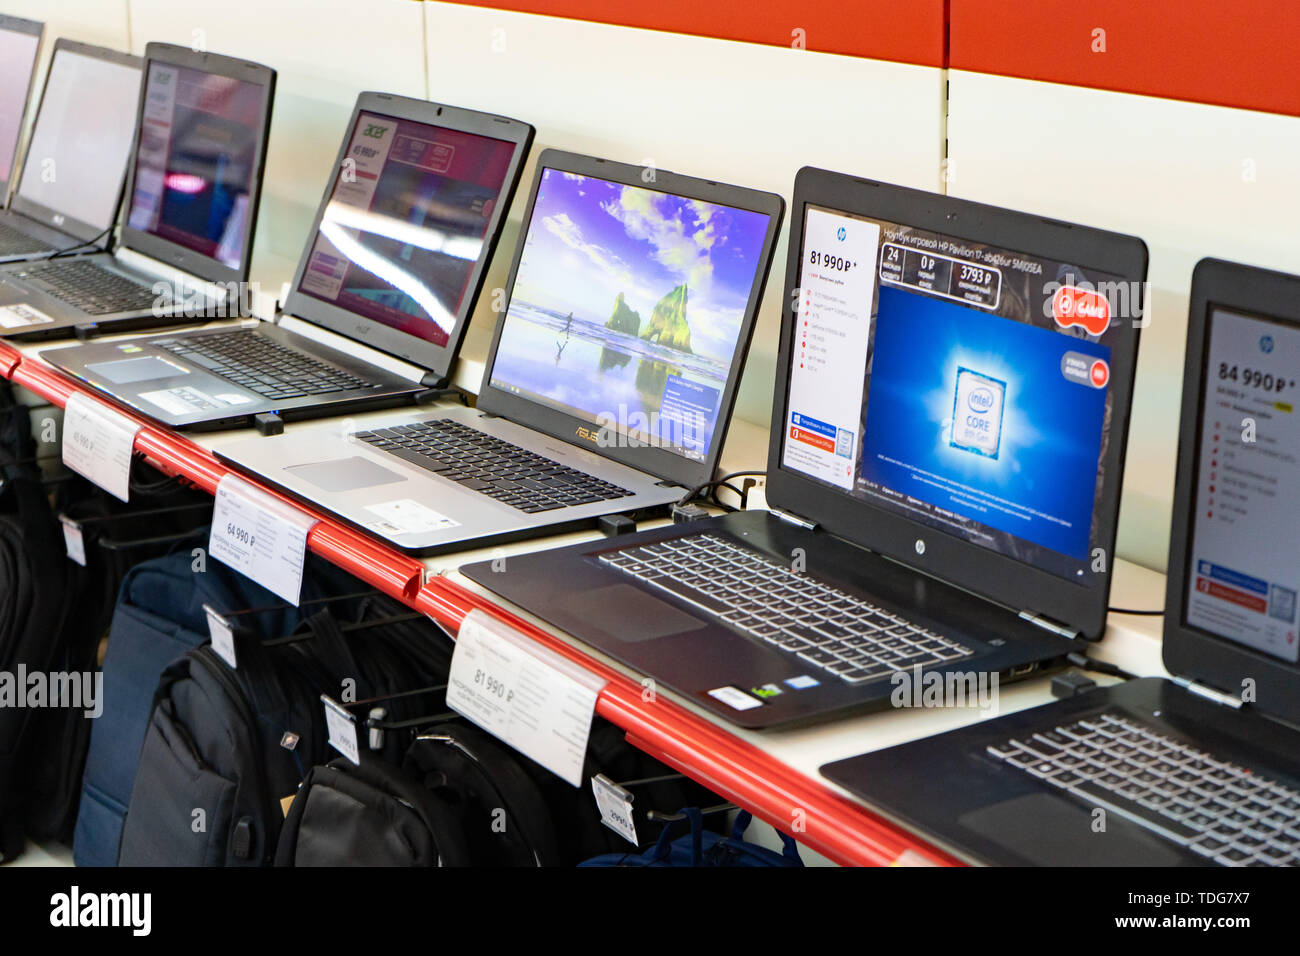 Chelyabinsk Region, Russia - June 2019. Household electrical appliances store M Video. Shelving with goods. Computers and laptops. Stock Photo